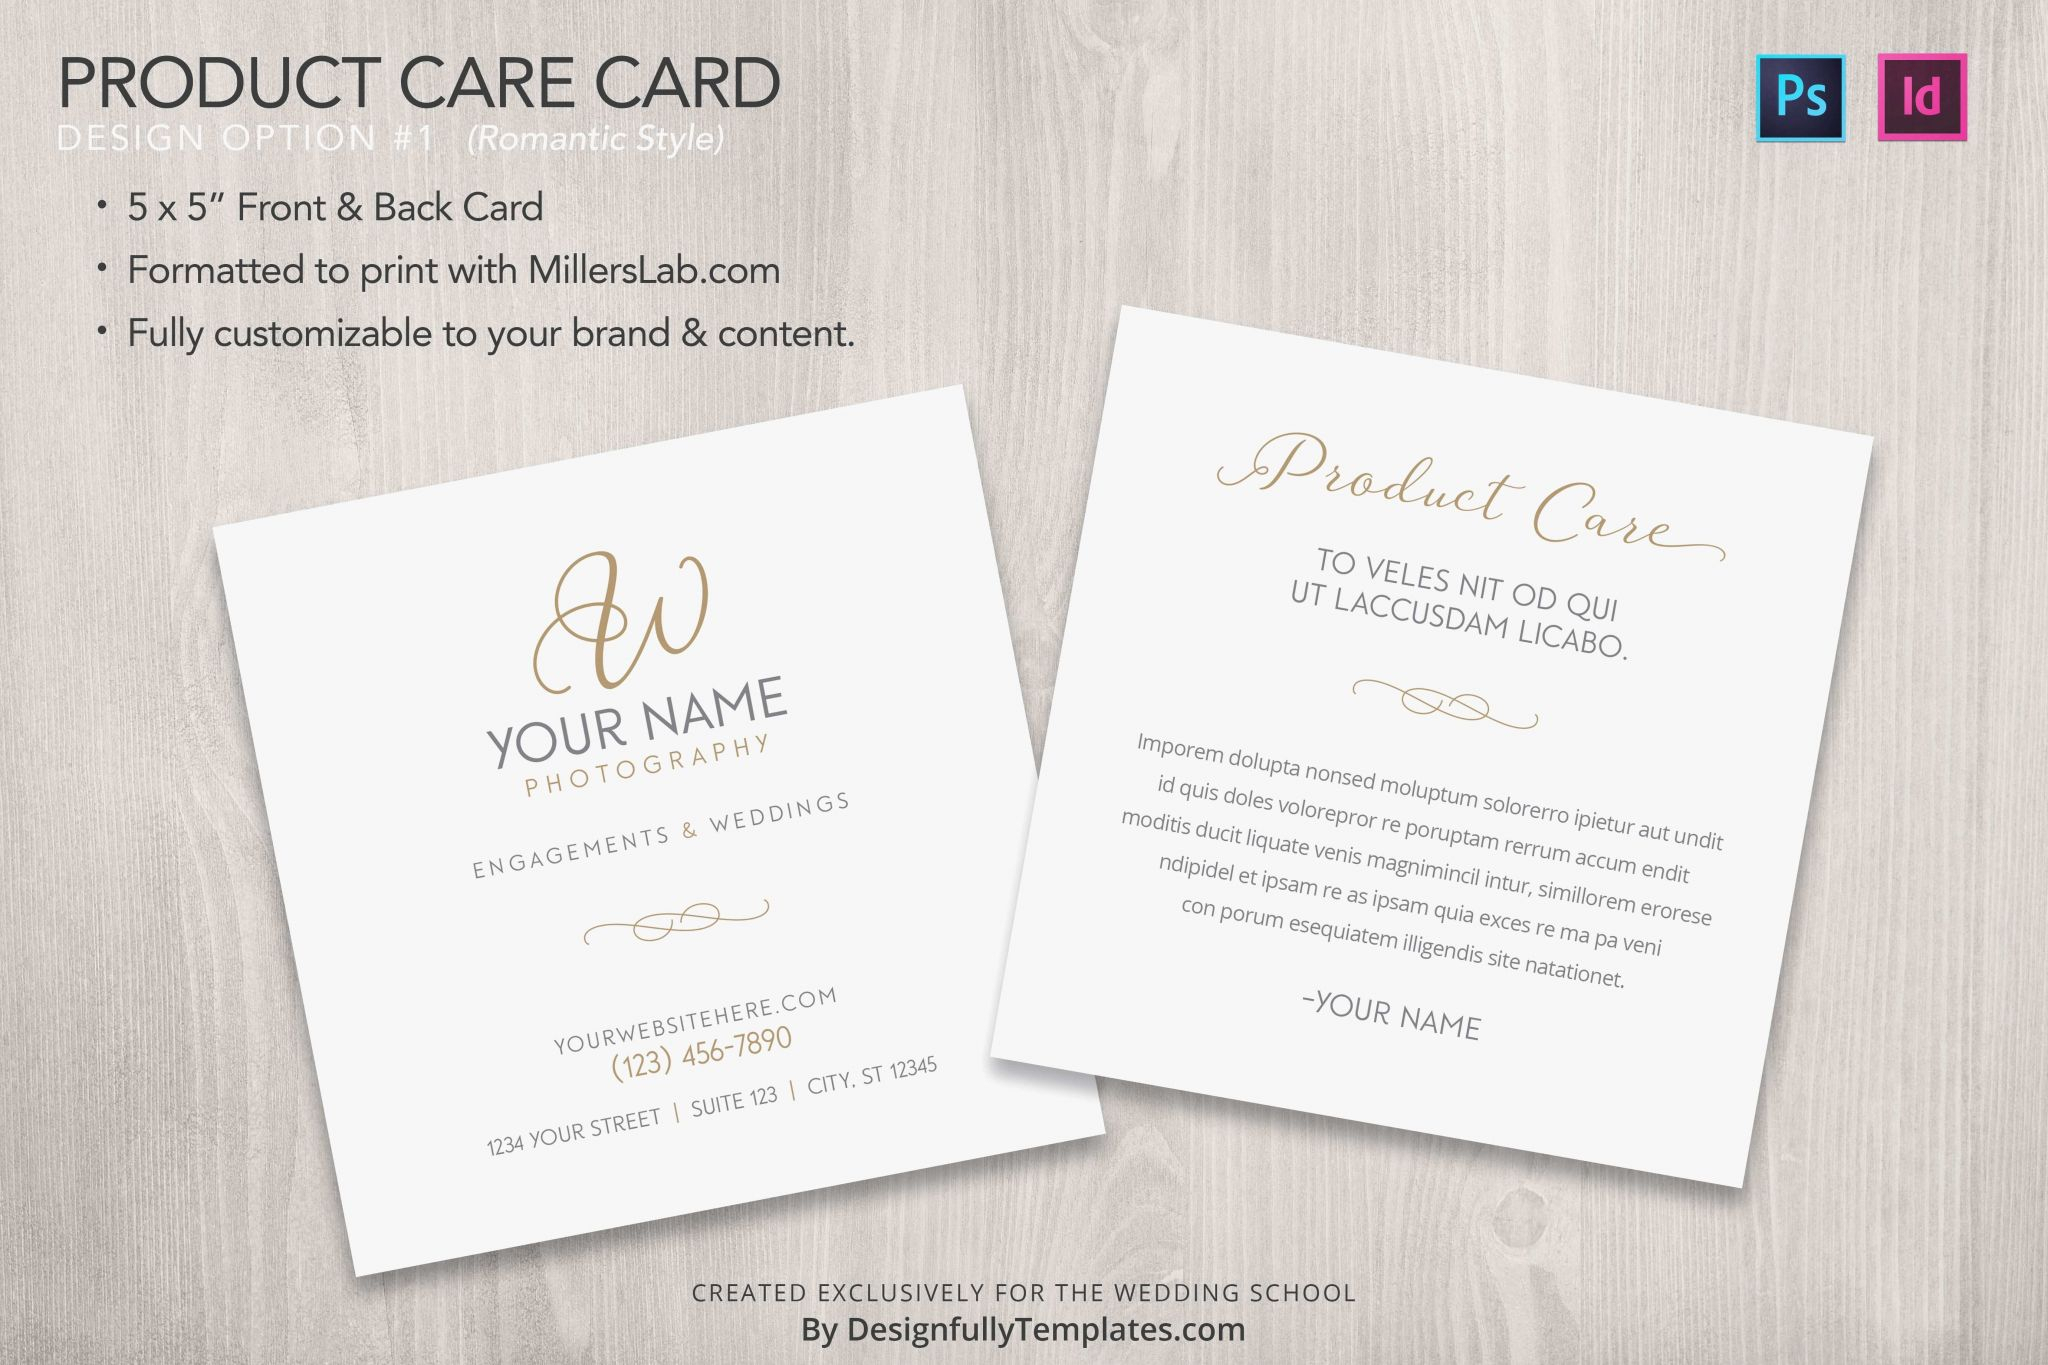 Free Place Card Templates 6 Per Page - Atlantaauctionco With Regard To Free Template For Place Cards 6 Per Sheet